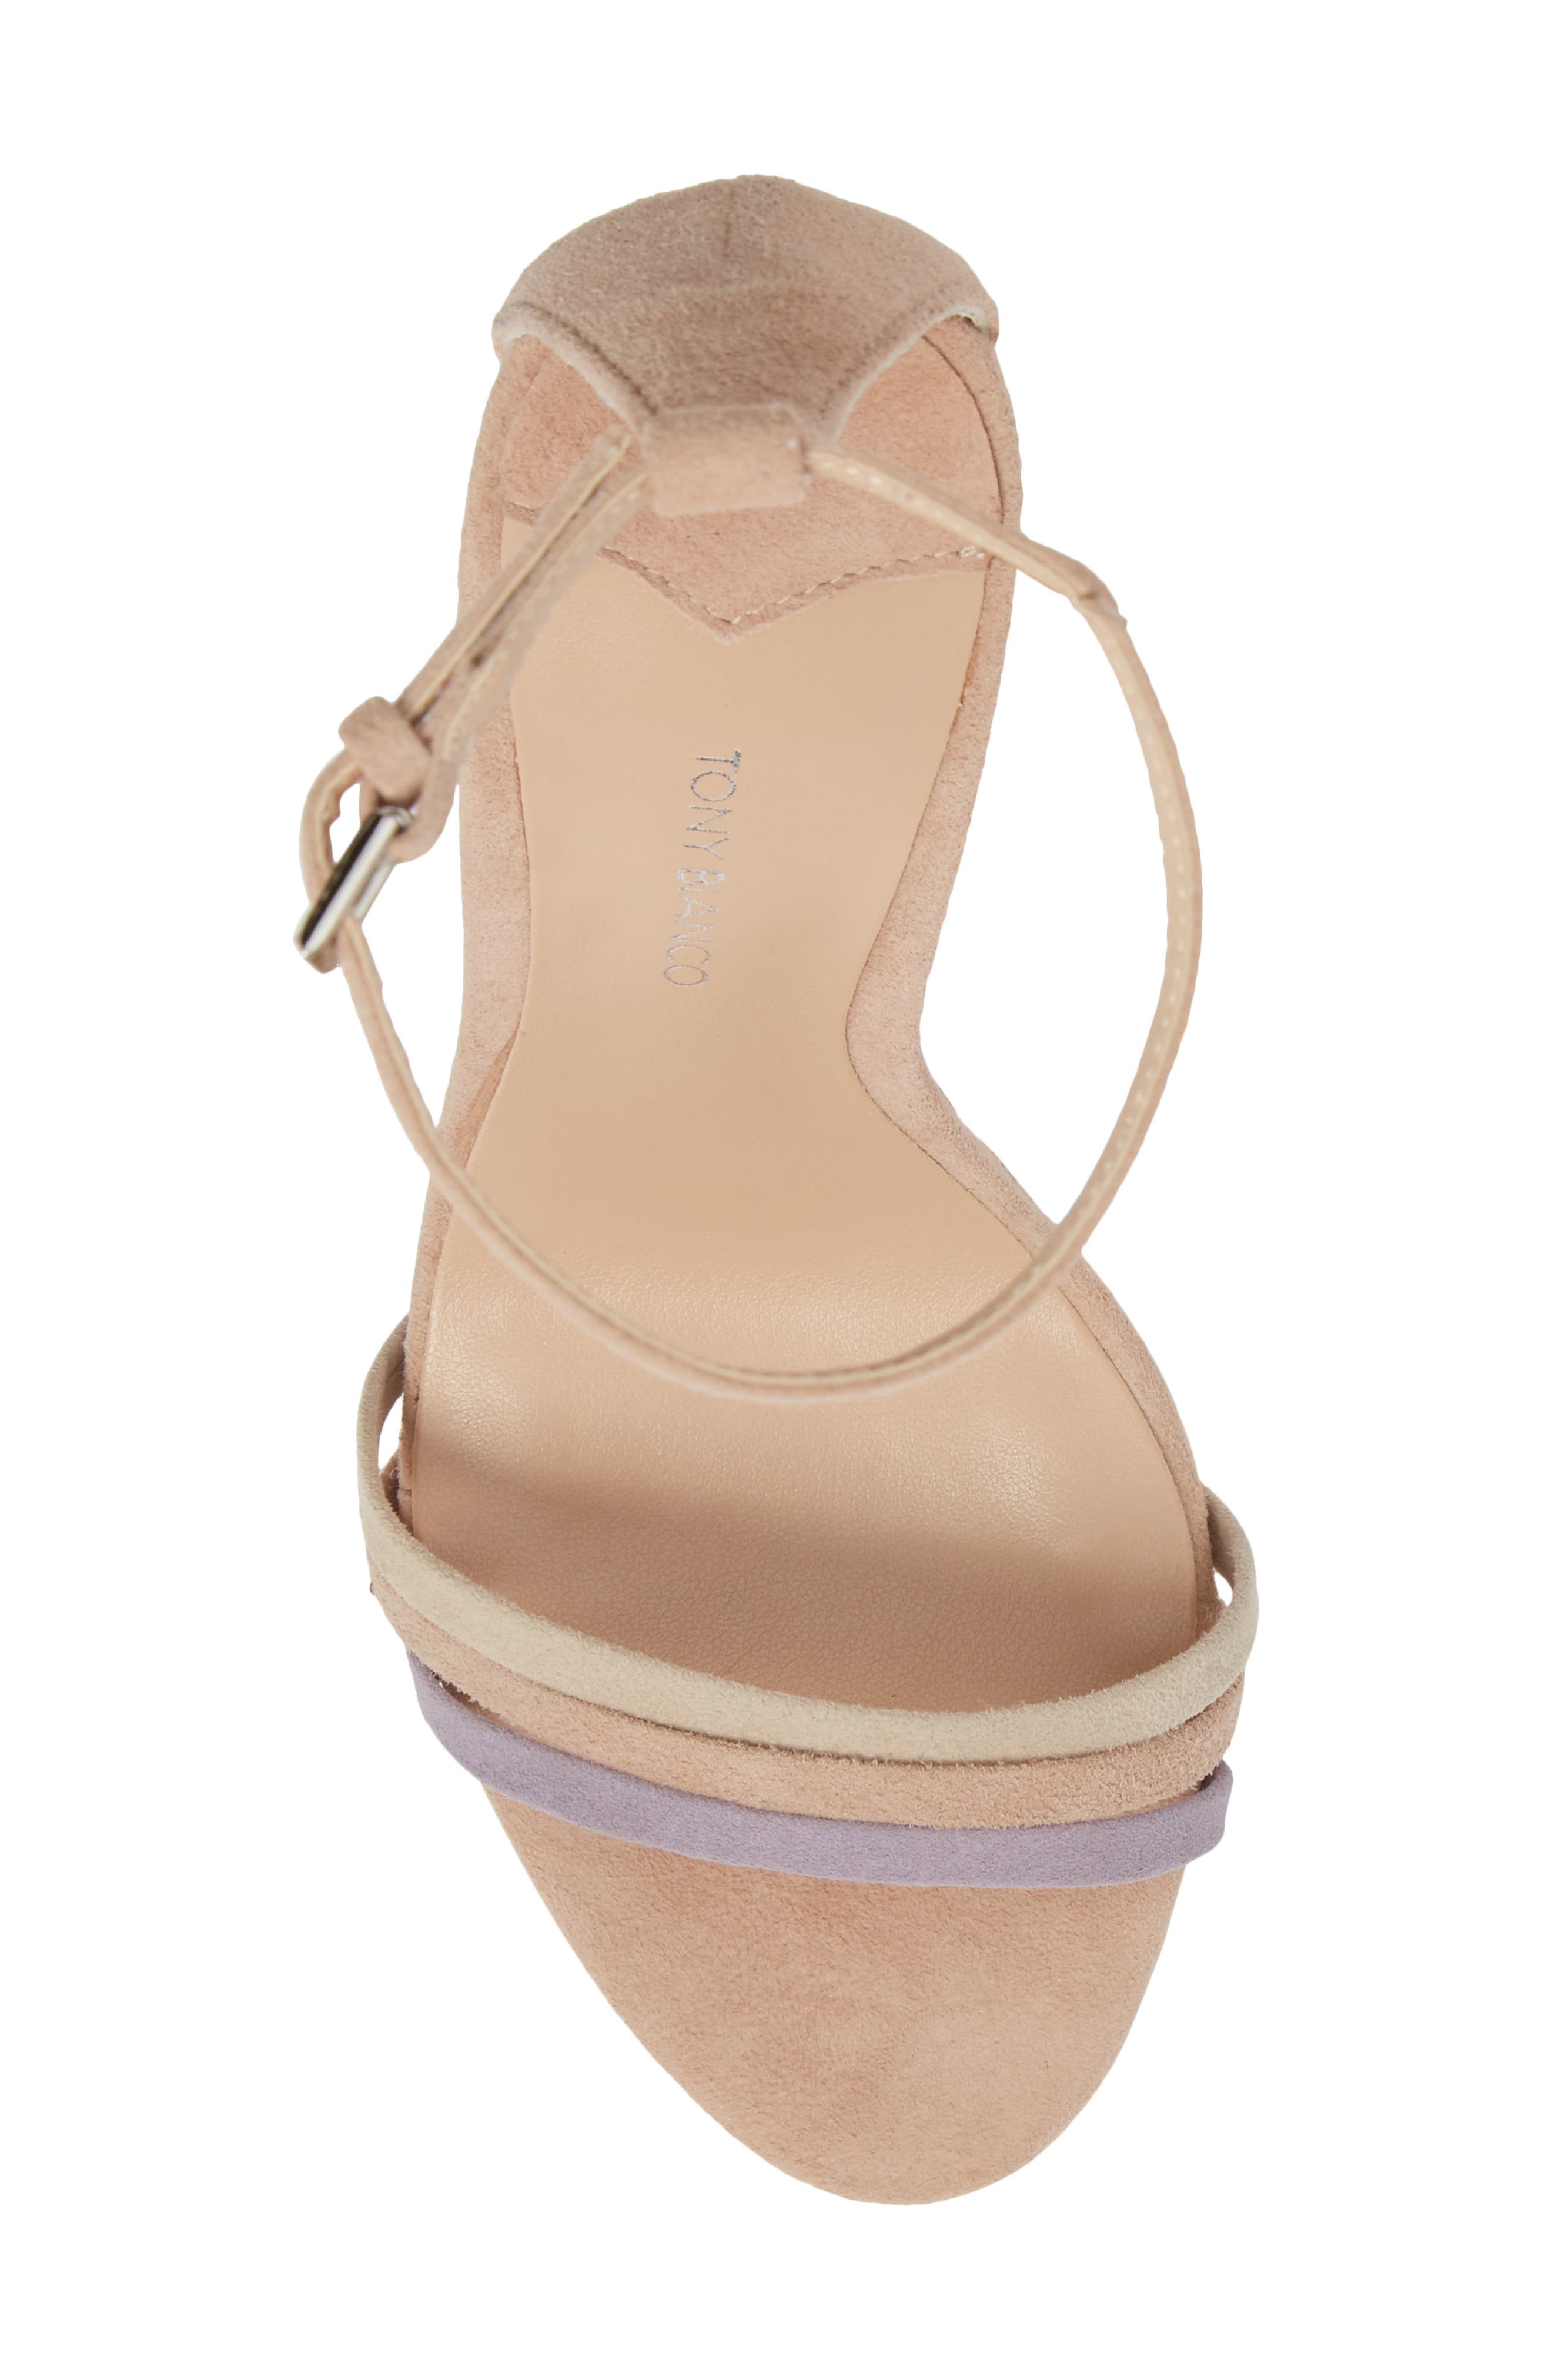 Aroma Strappy Sandal,                             Alternate thumbnail 5, color,                             Blush Suede